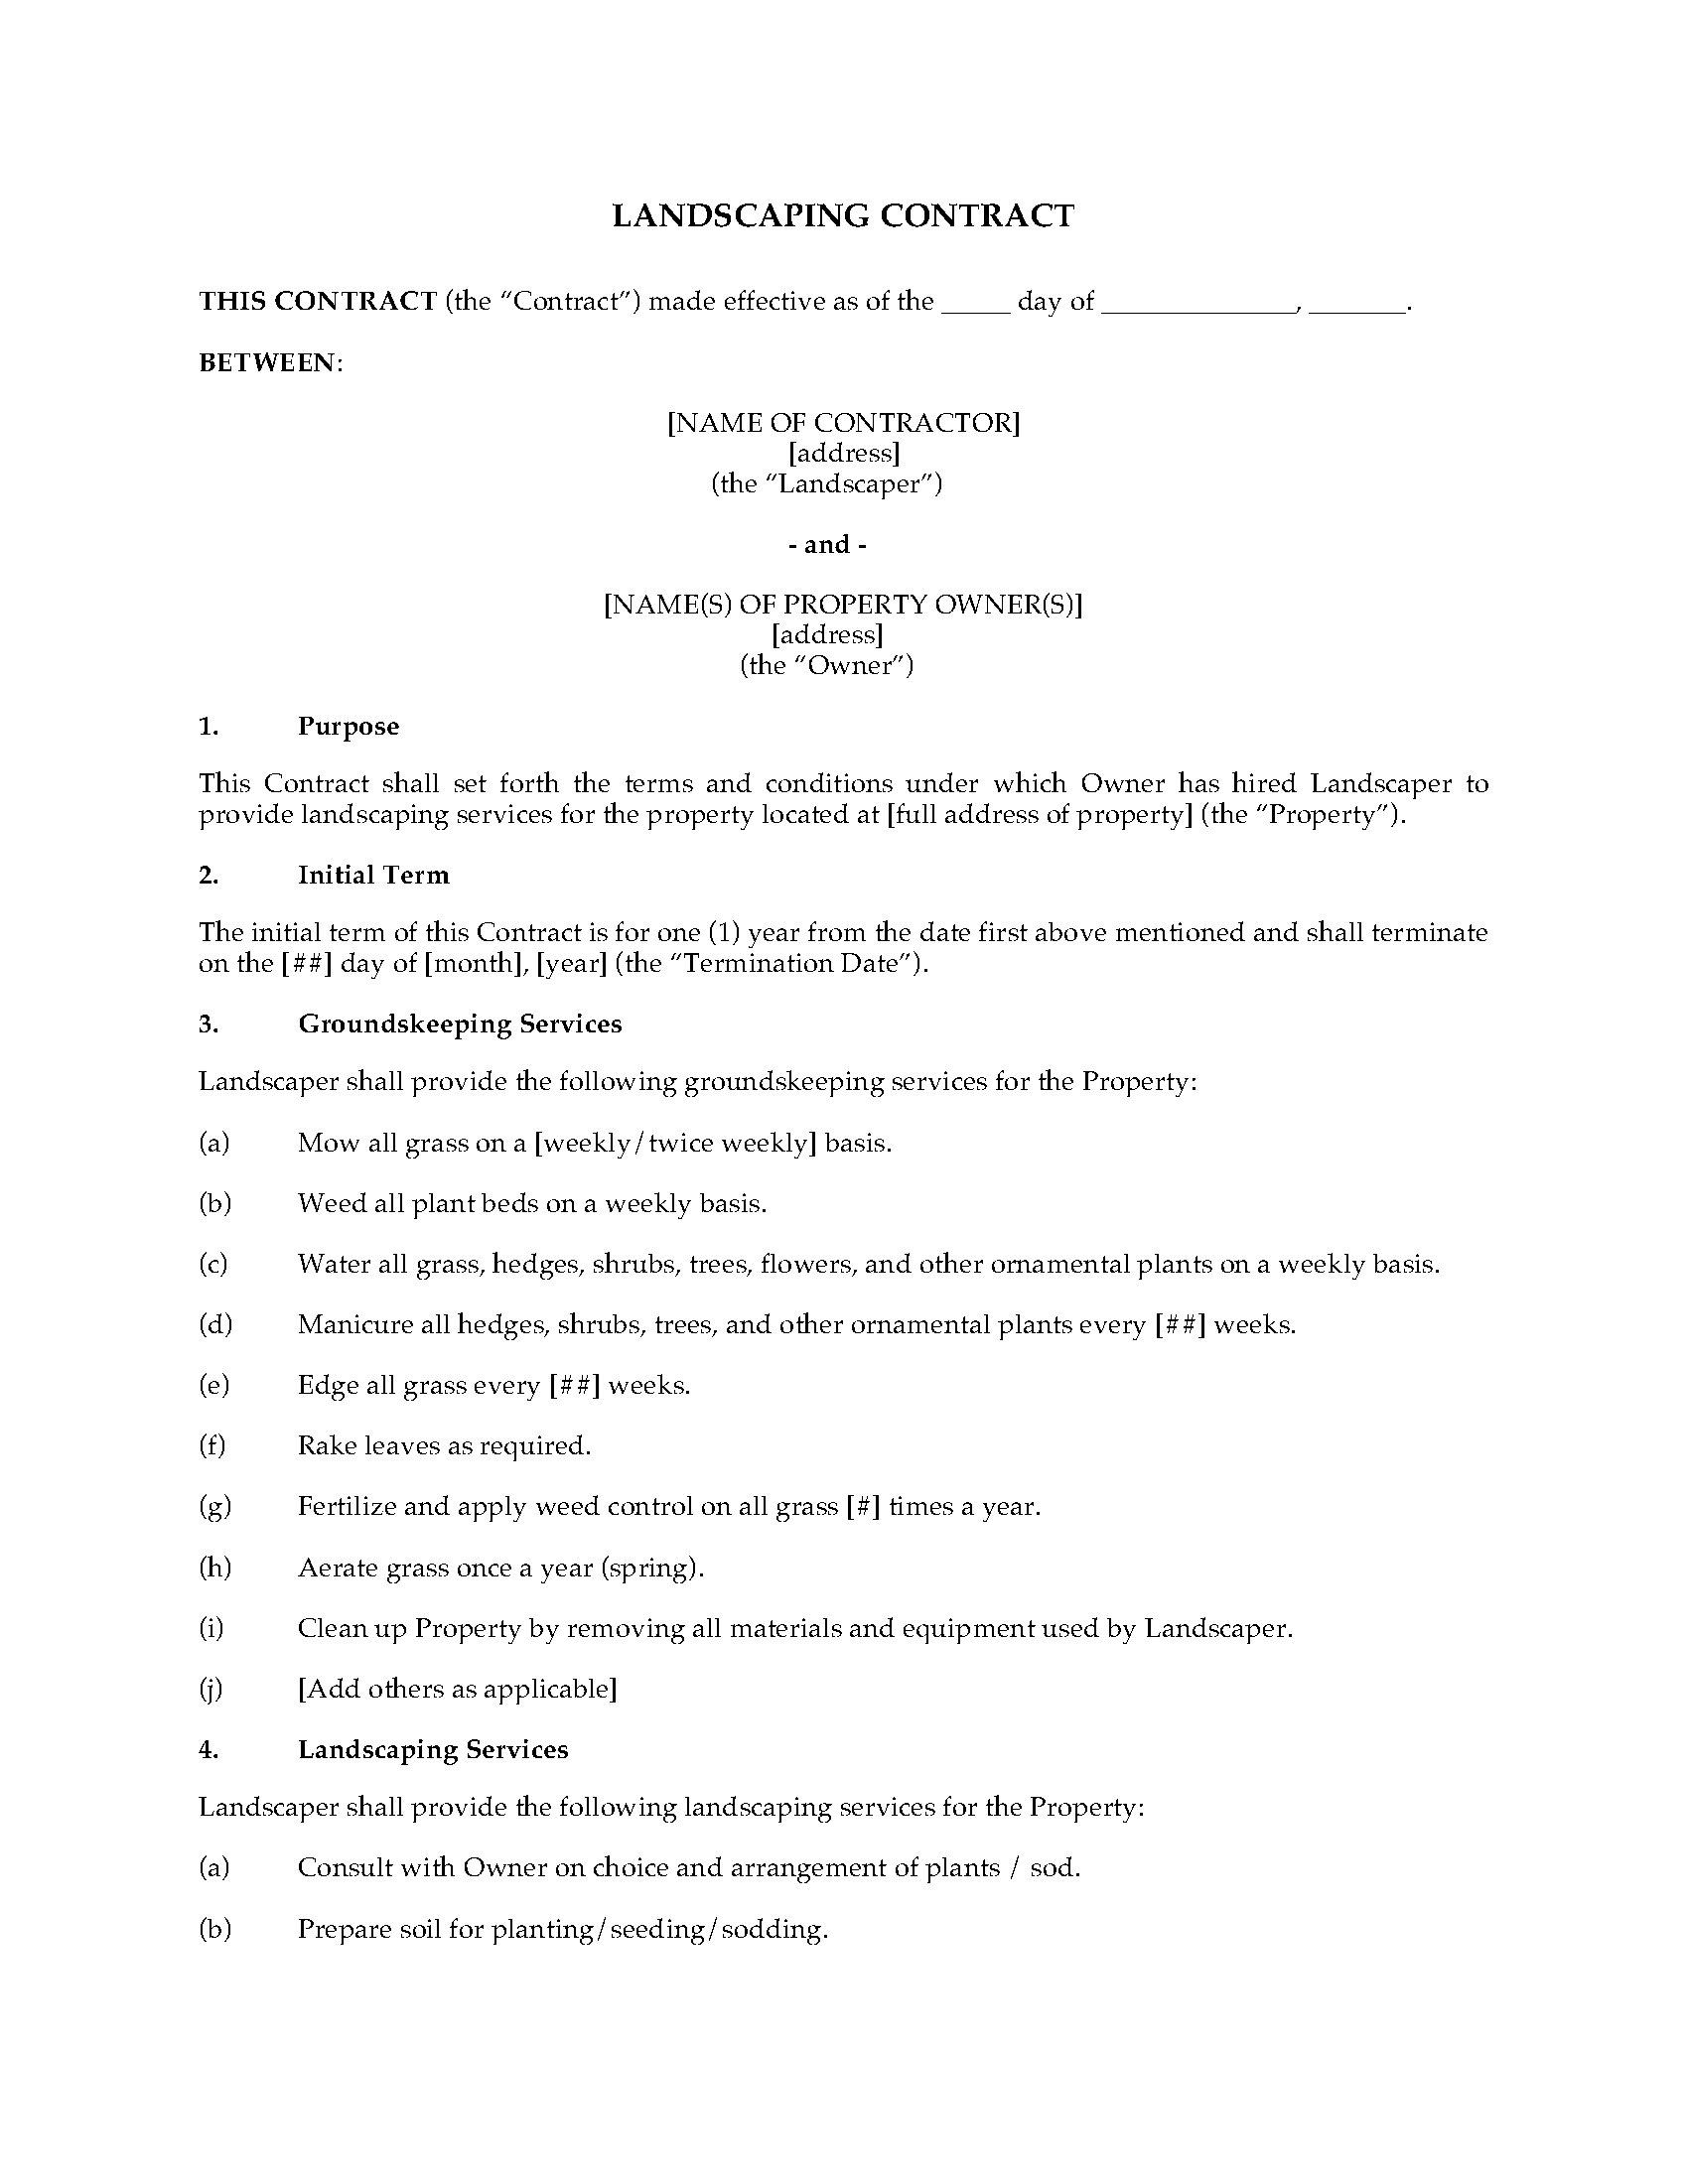 Landscaping Contract Form Legal Forms And Business Templates